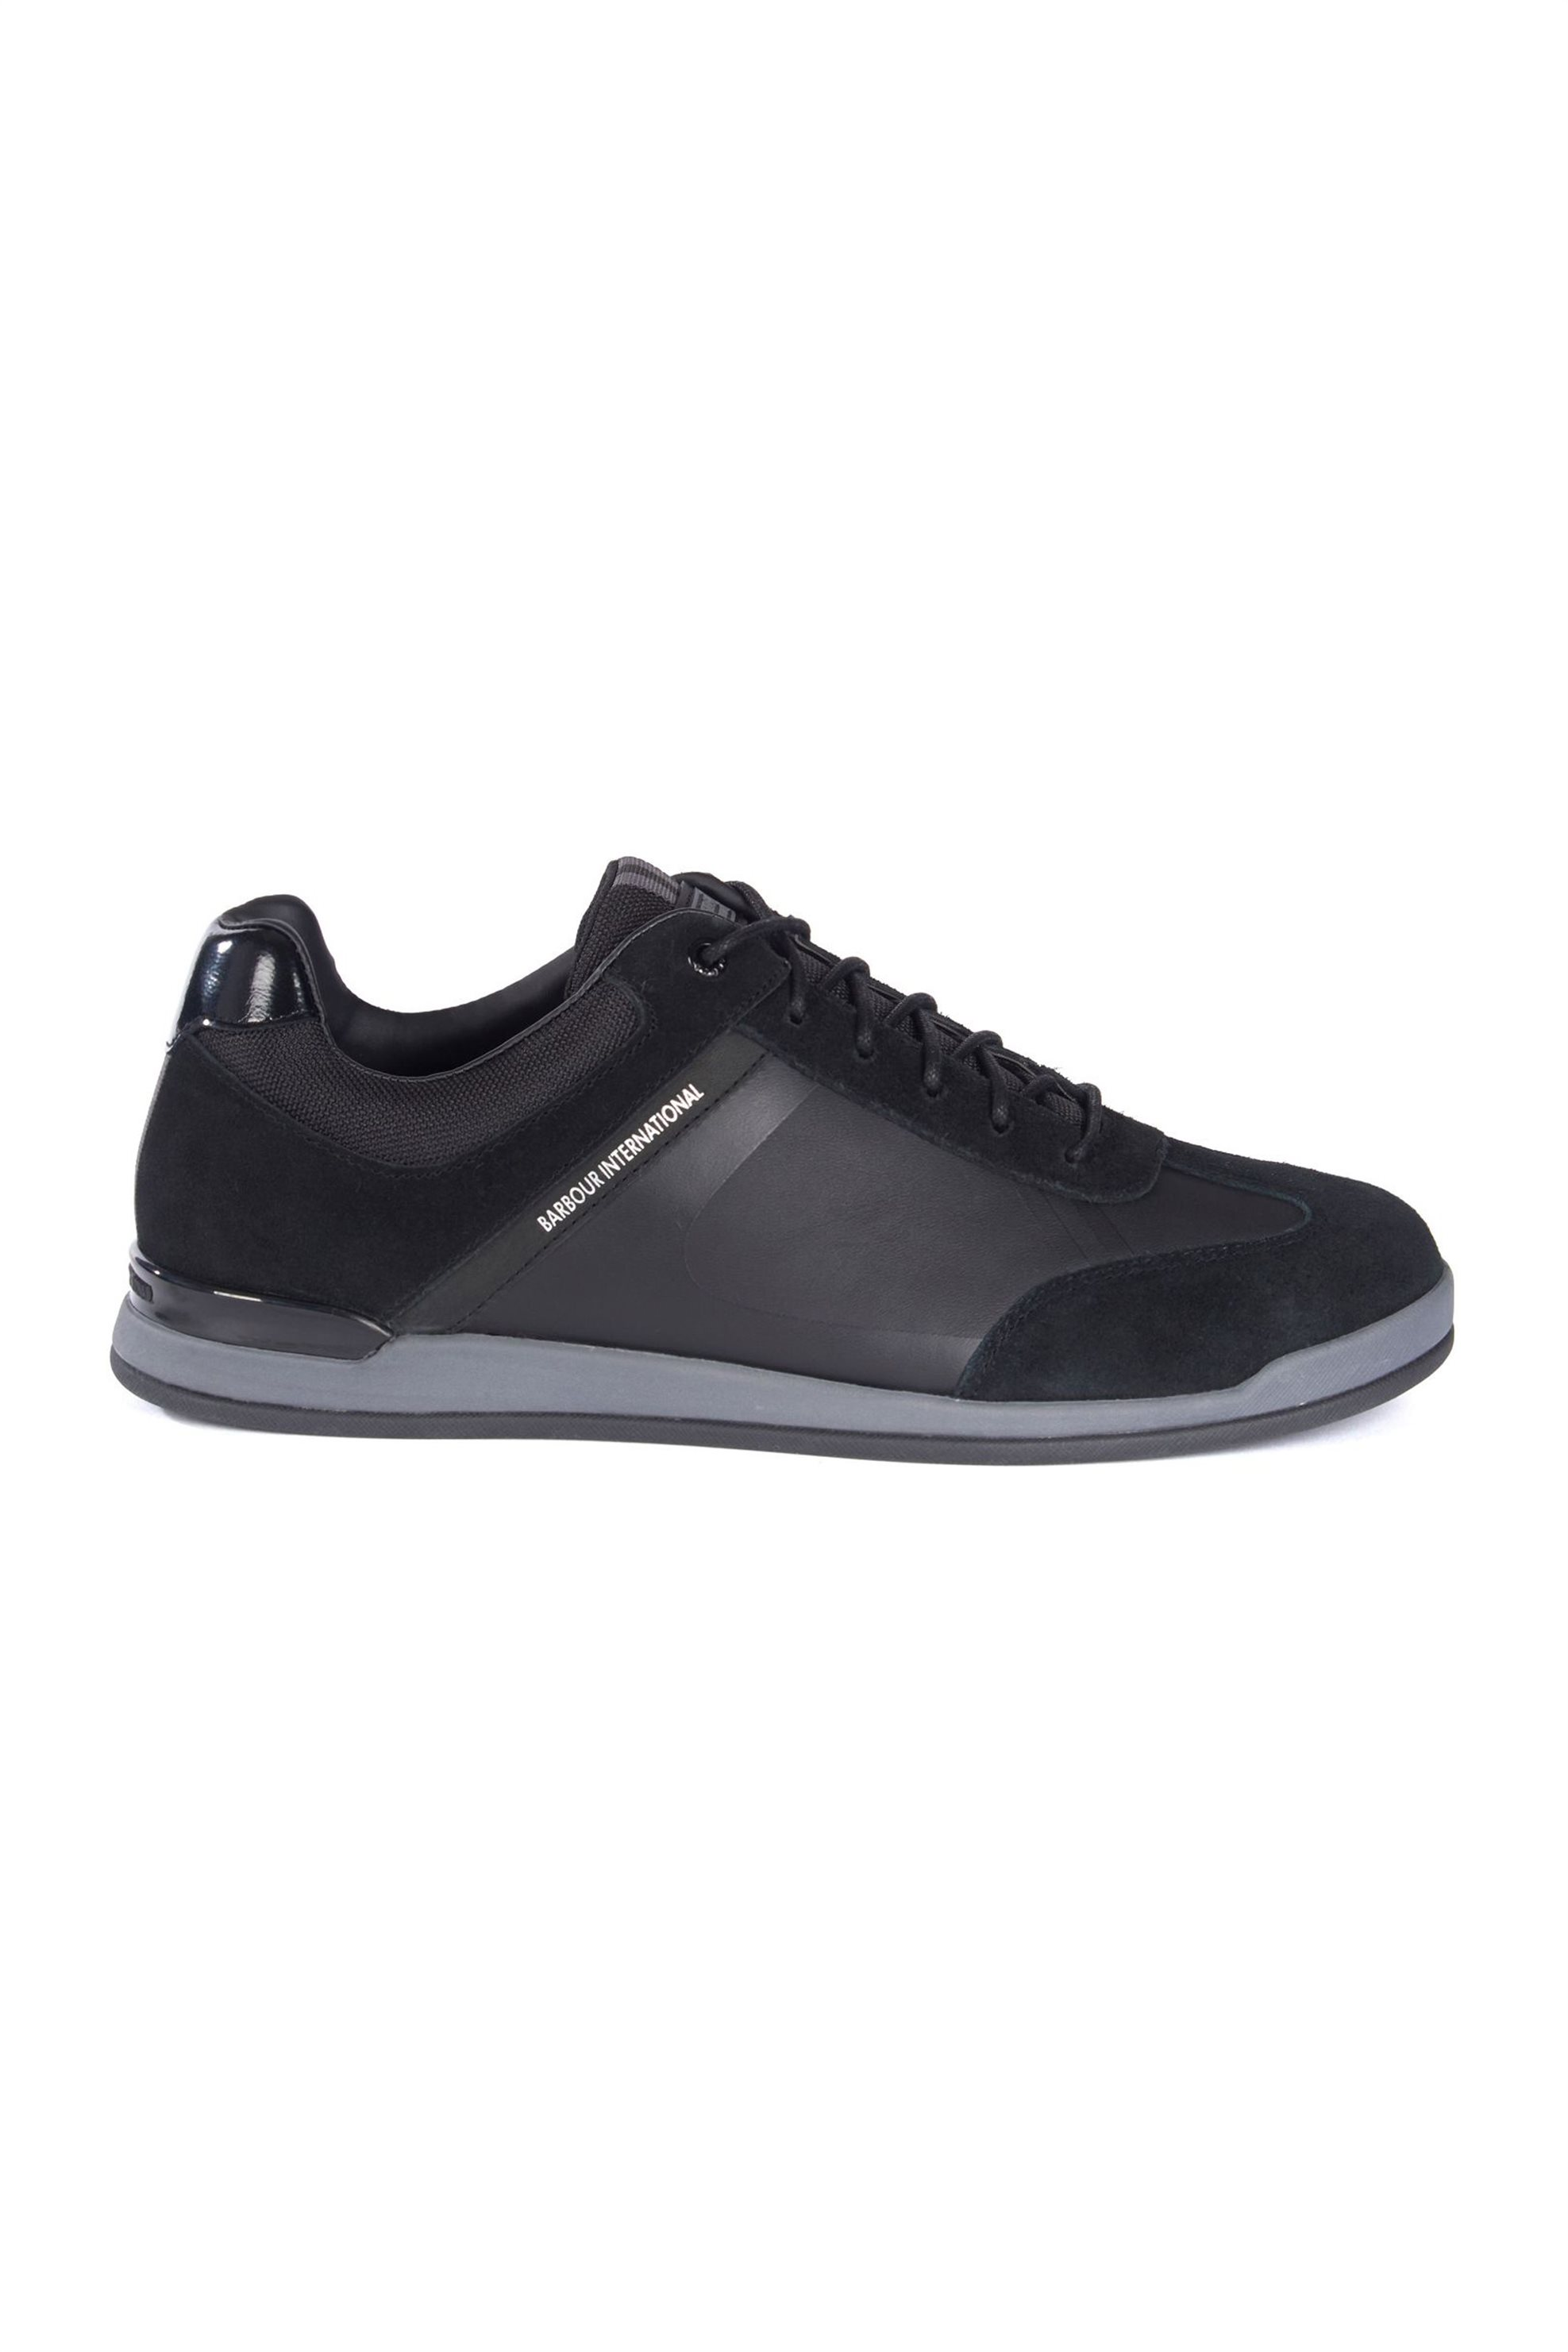 Notos Barbour ανδρικά trainers Cinder – MFO0405 – Μαύρο 8ce54851e85